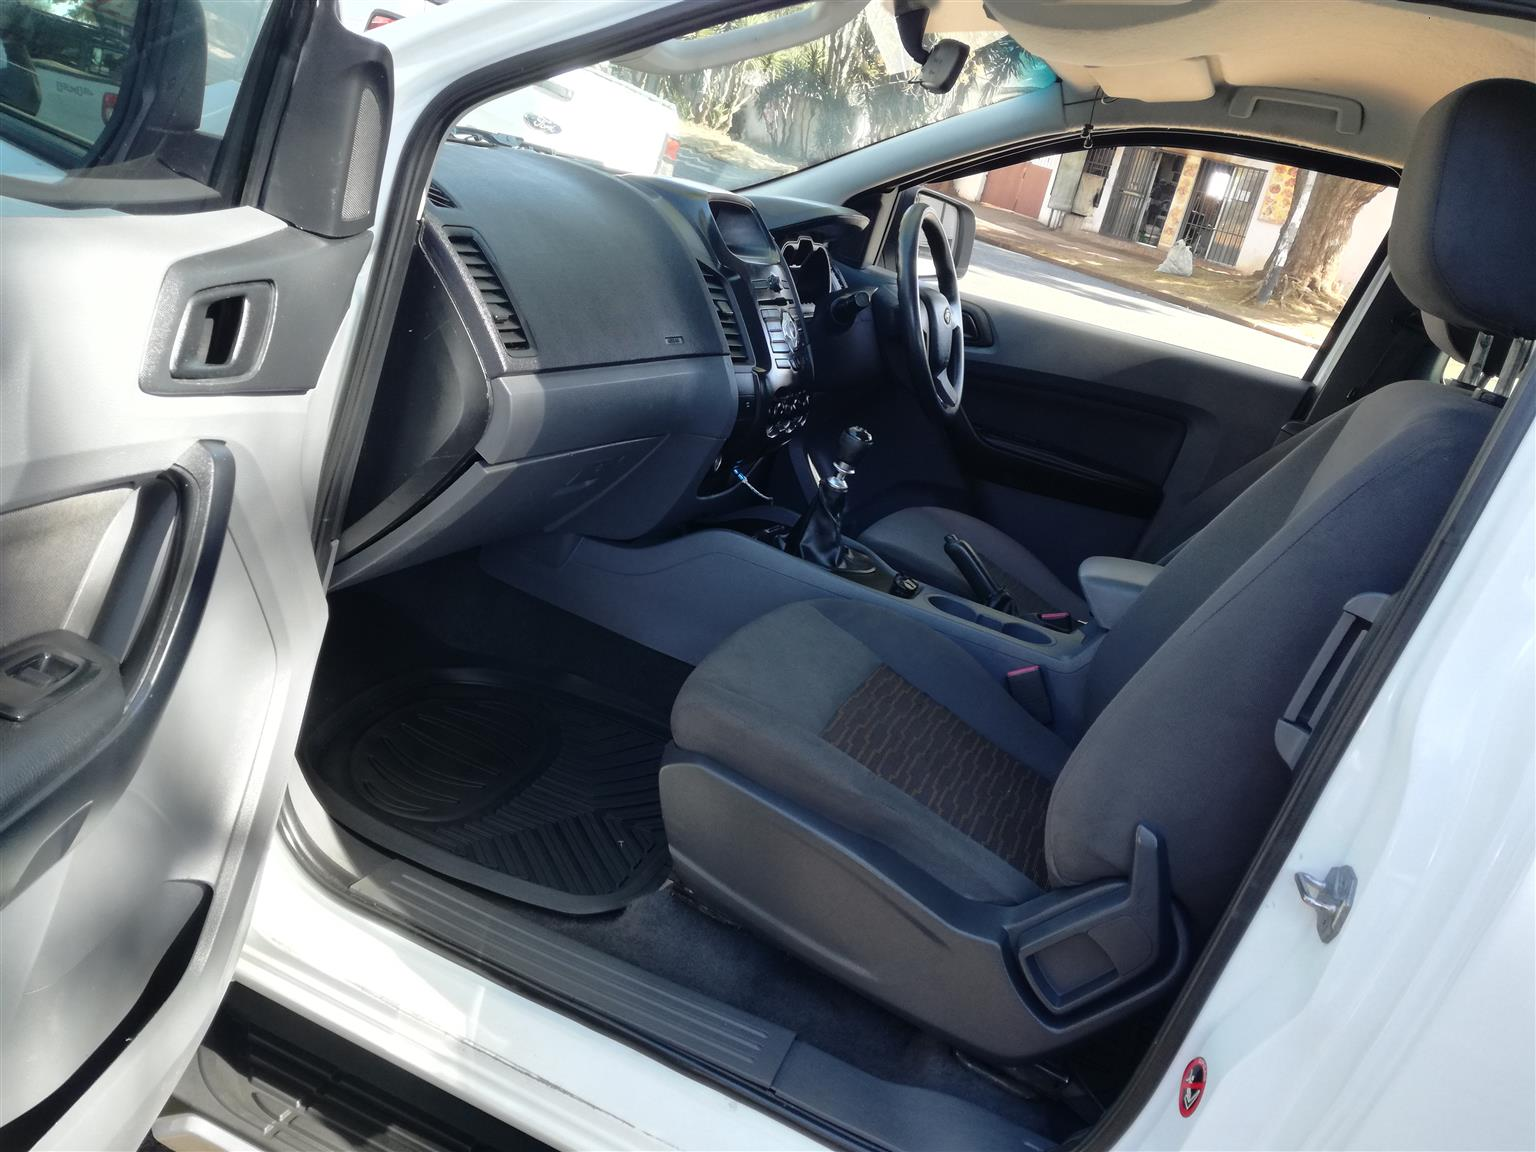 2015 Ford Ranger Super Cab 2.2TDCi Mechanically perfect